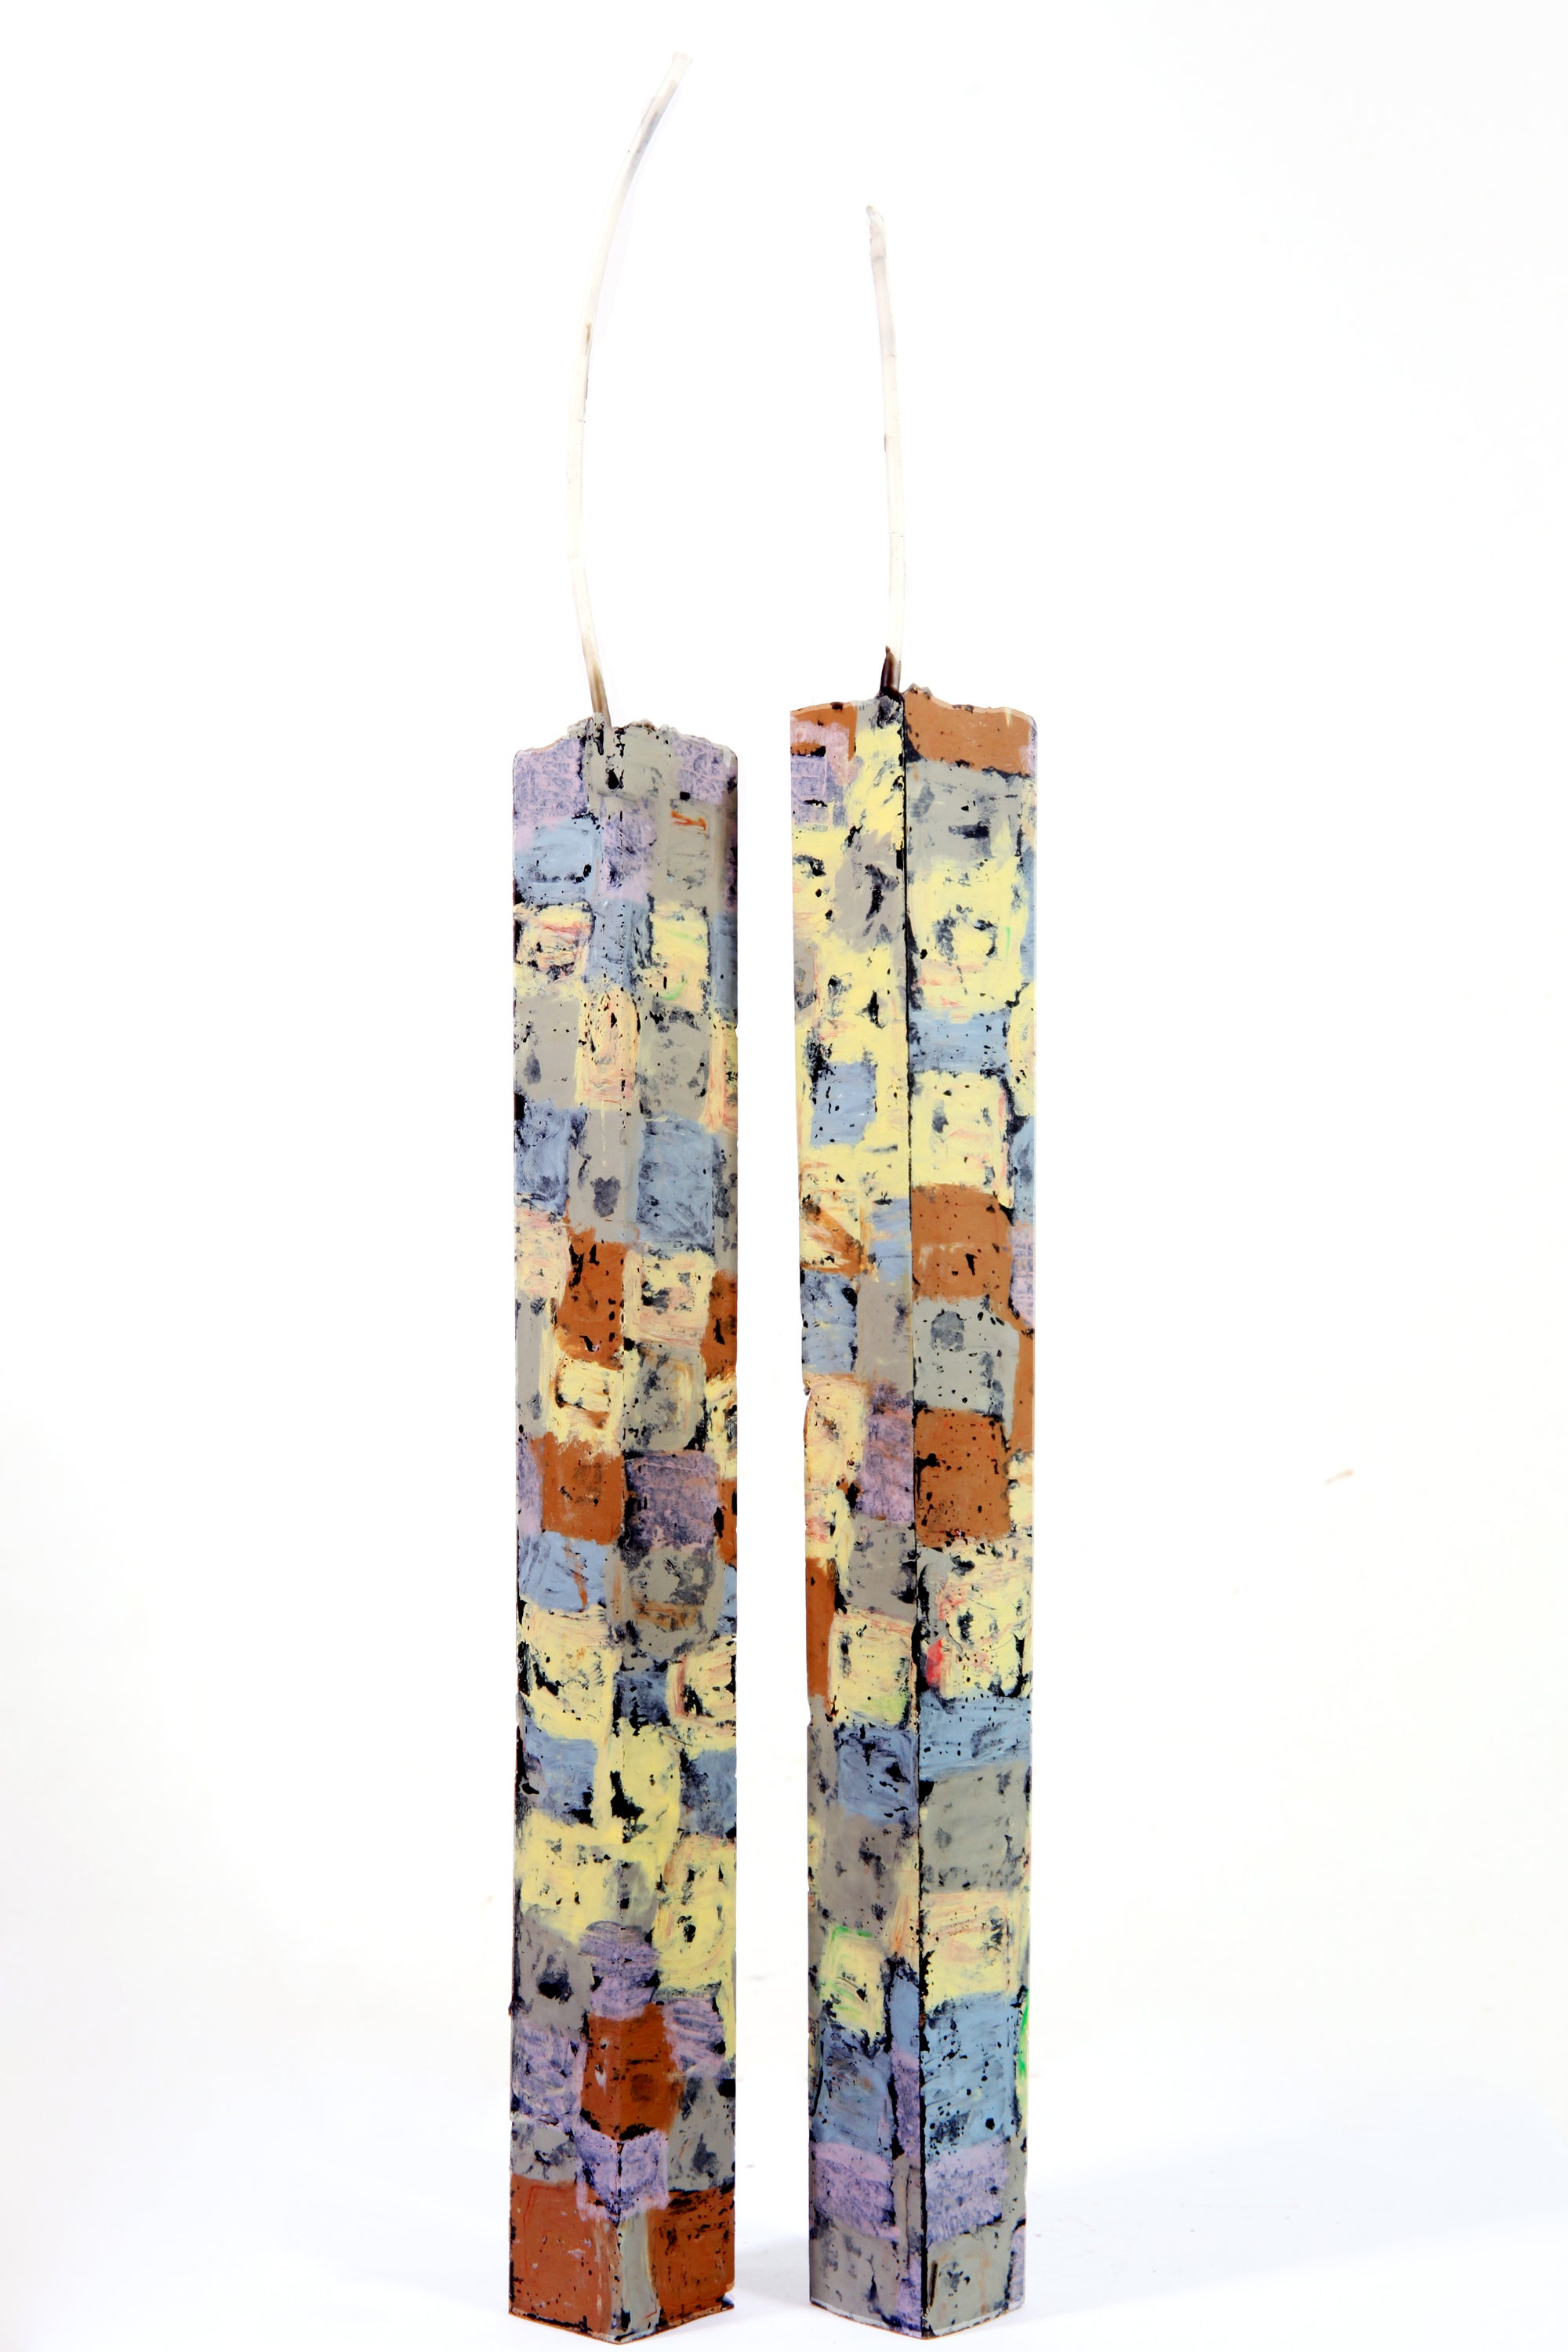 Image of Extra Tall Tower Pair in blue grey, smoke grey, lilac, soft yellow and sienna